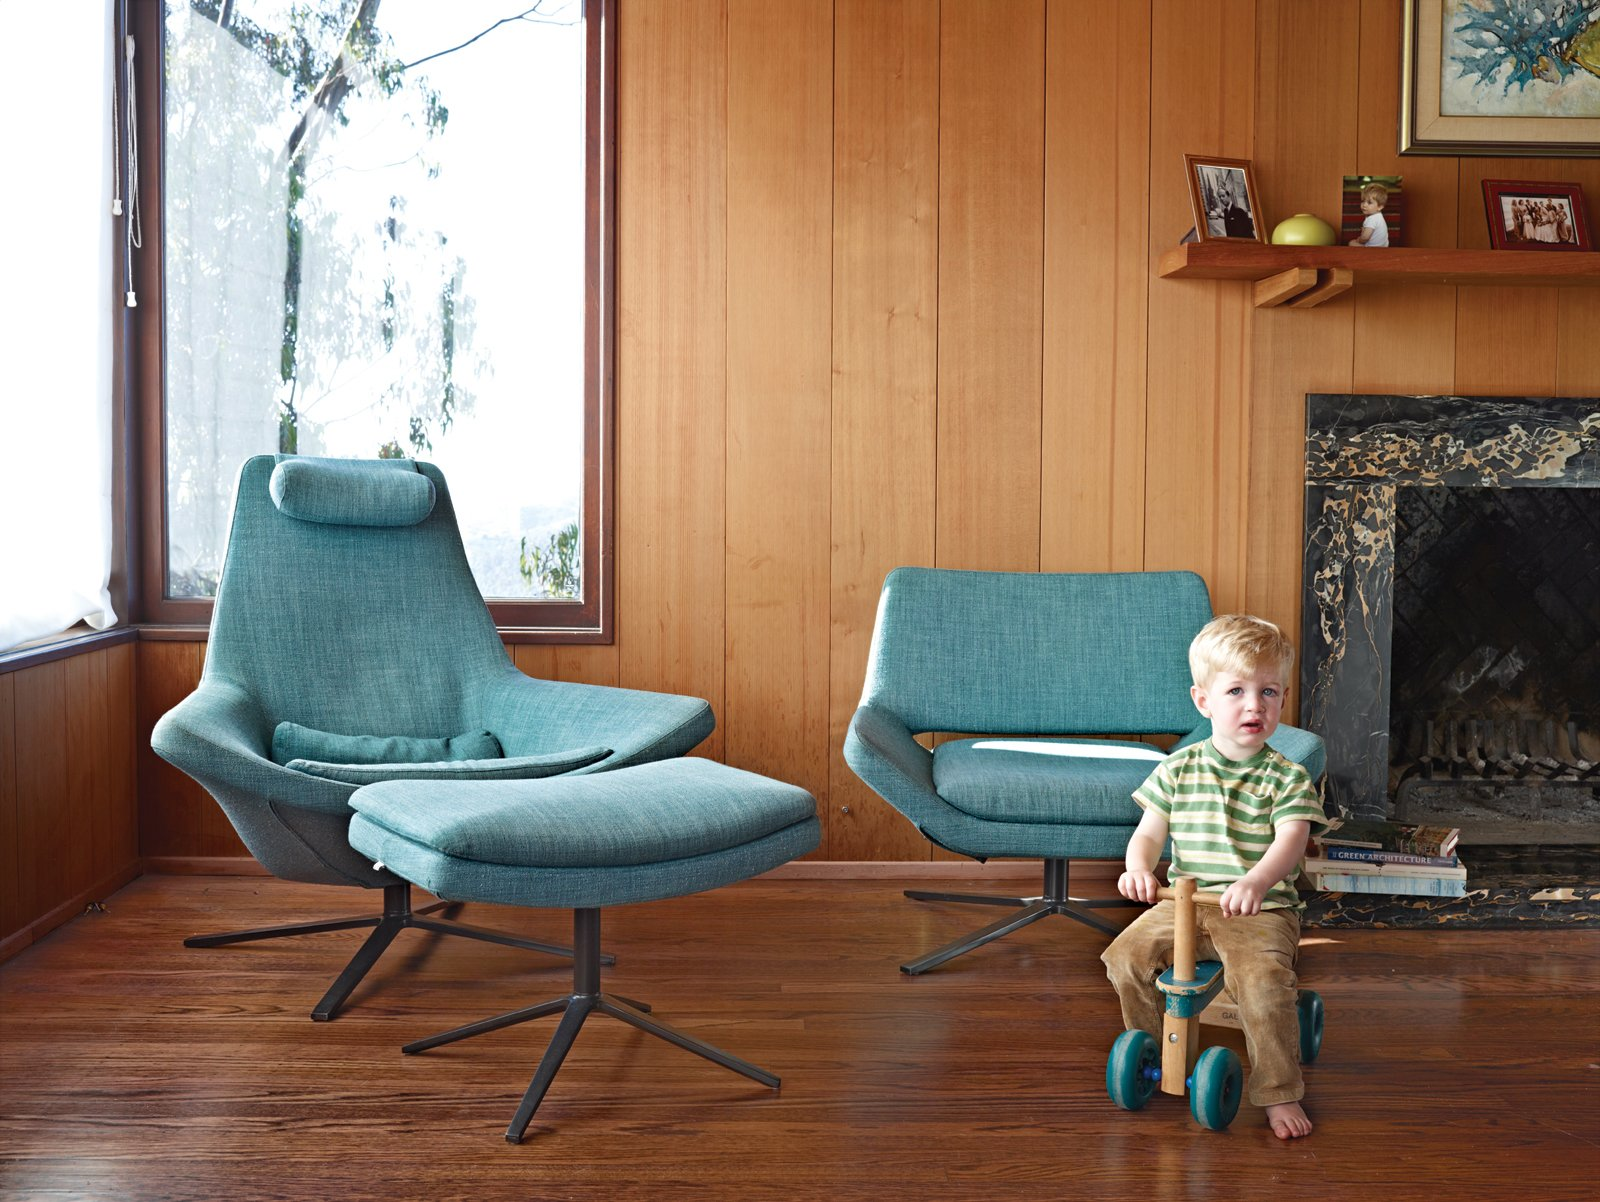 Paul cruises by Metropolitan pieces by B&B Italia in the living room of the main house.  Midcentury Homes by Dwell from A Modern Prefab Addition to a Mid-Century California Classic